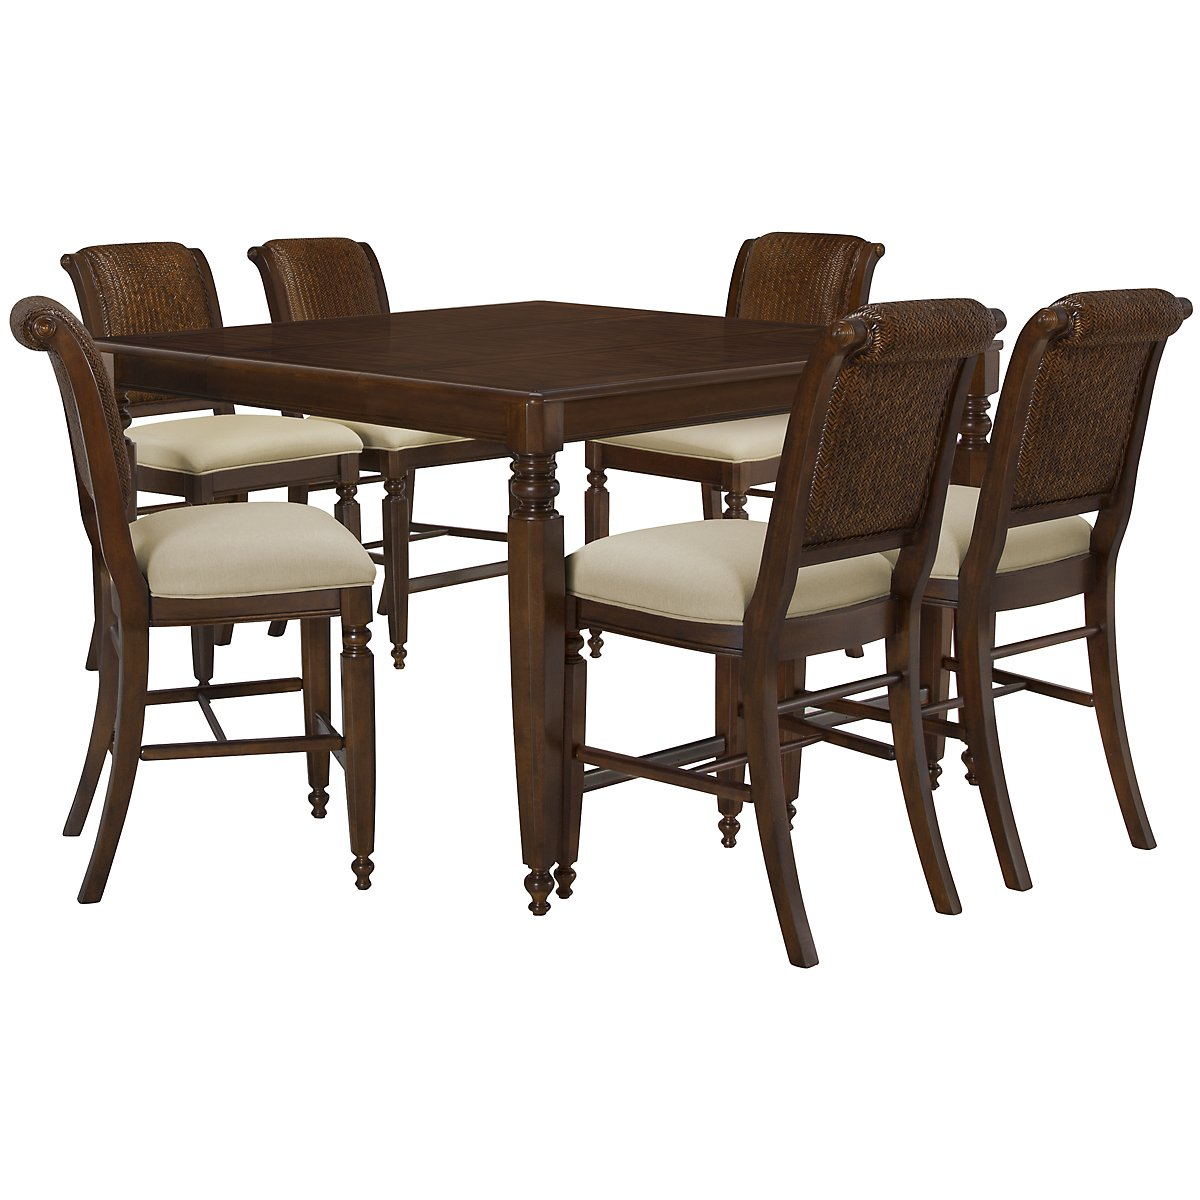 Claire Dark Tone High Table & 4 Woven Barstools